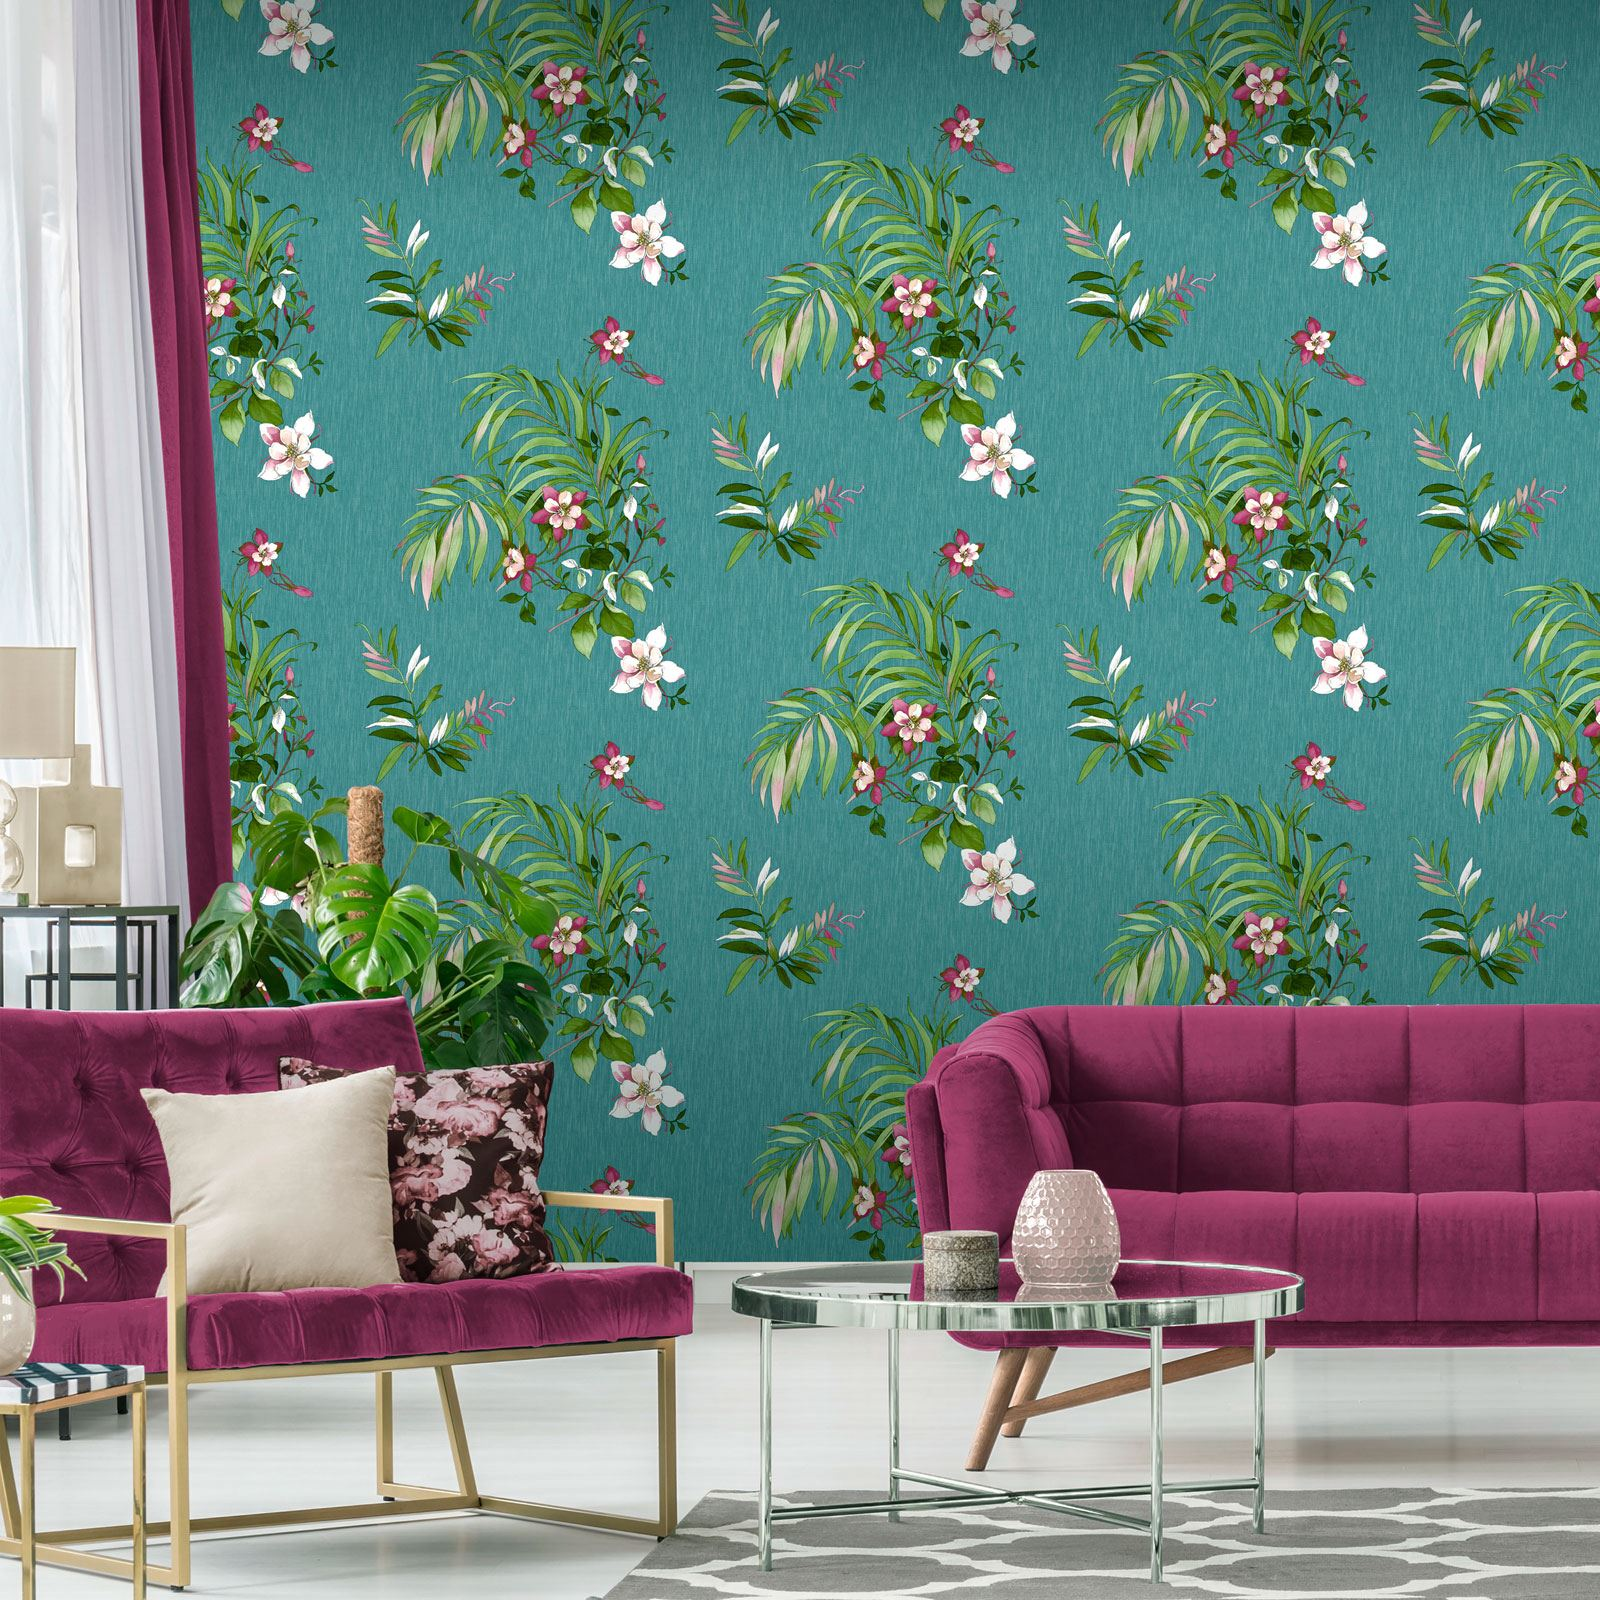 TEAL GREEN WALLPAPER GEOMETRIC FLORAL LEAVES ANIMALS METALLIC GLITTER /& MORE